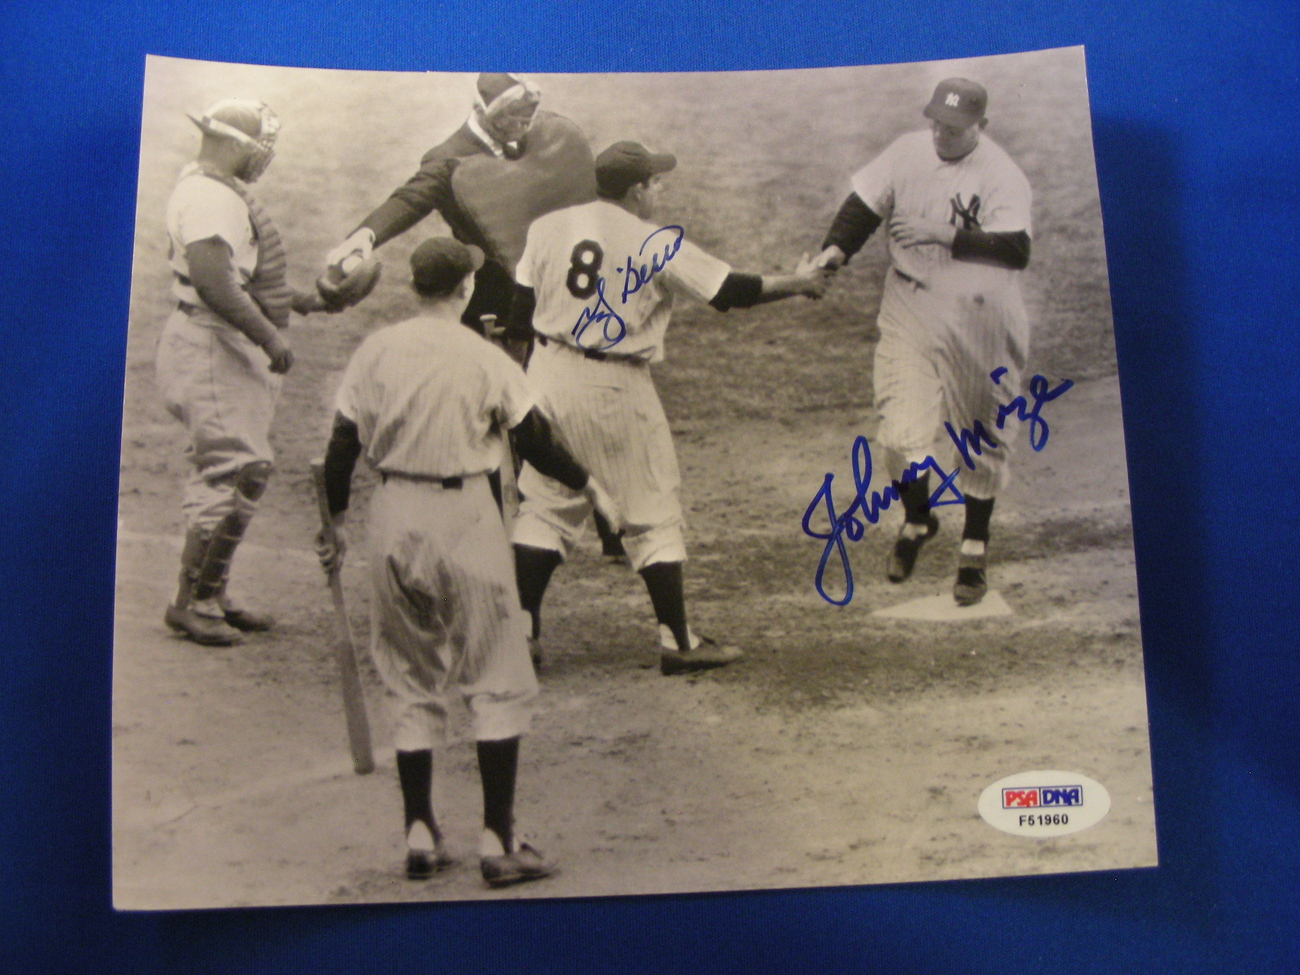 1952 WS GAME 4 YOGI BERRA JOHNNY MIZE YANKEES DODGERS SIGNED PRESS PHOTO PSA/DNA